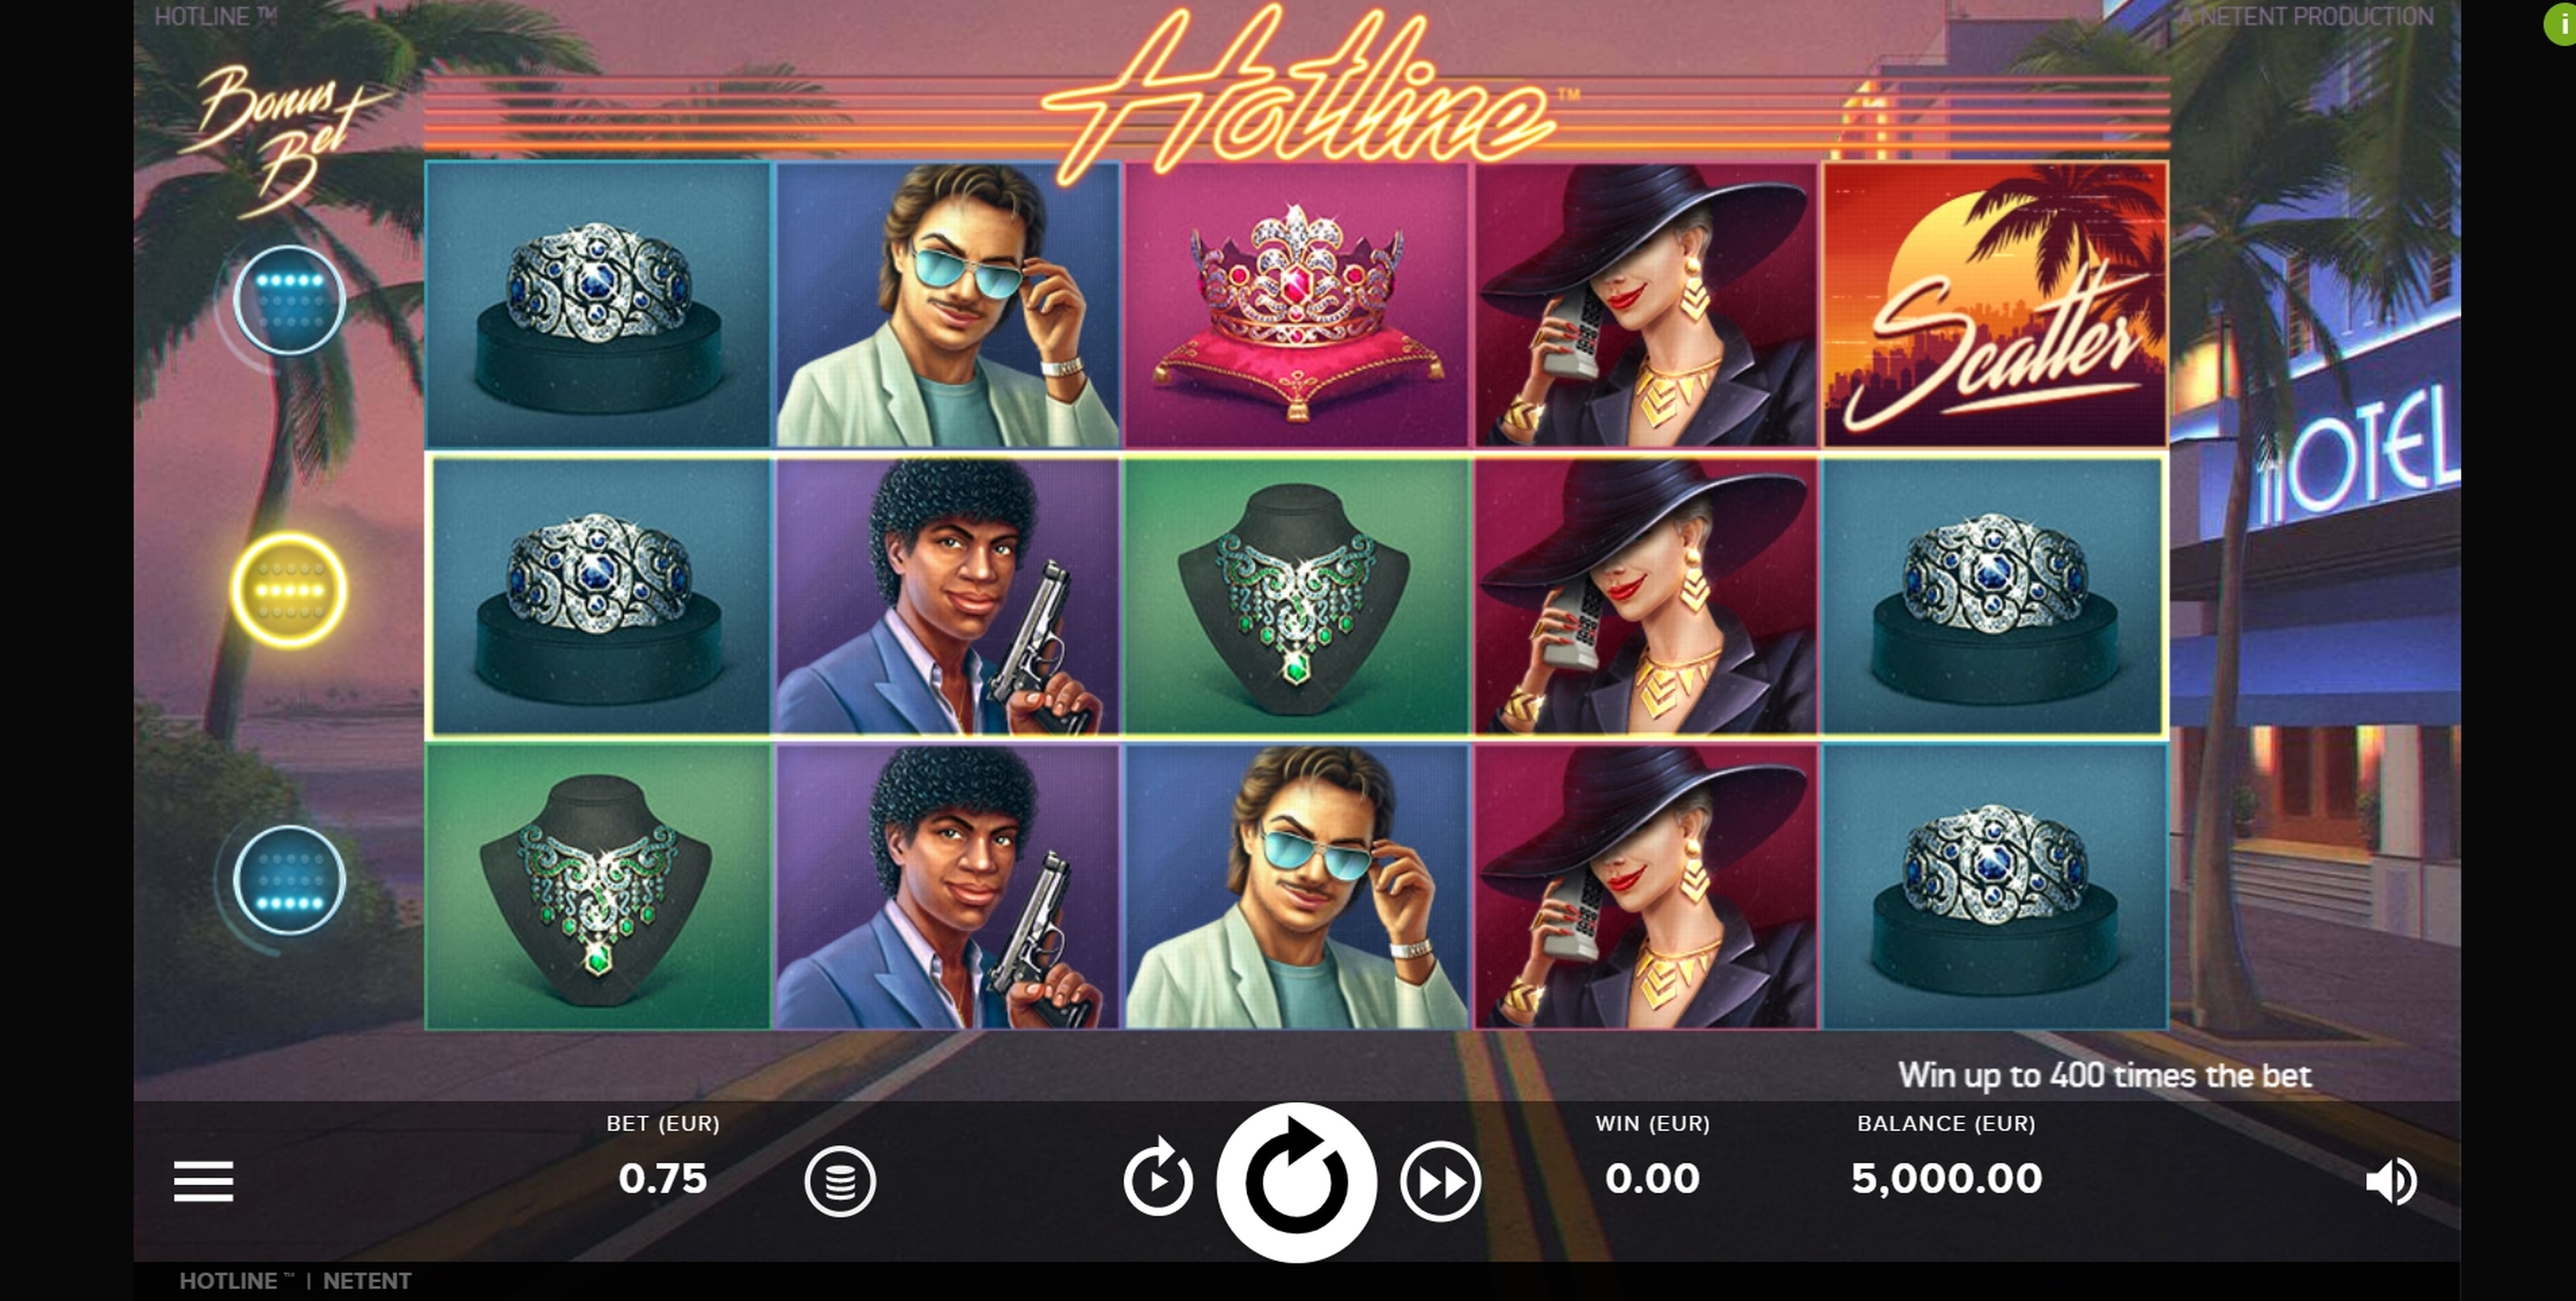 Reels in Hotline Slot Game by NetEnt